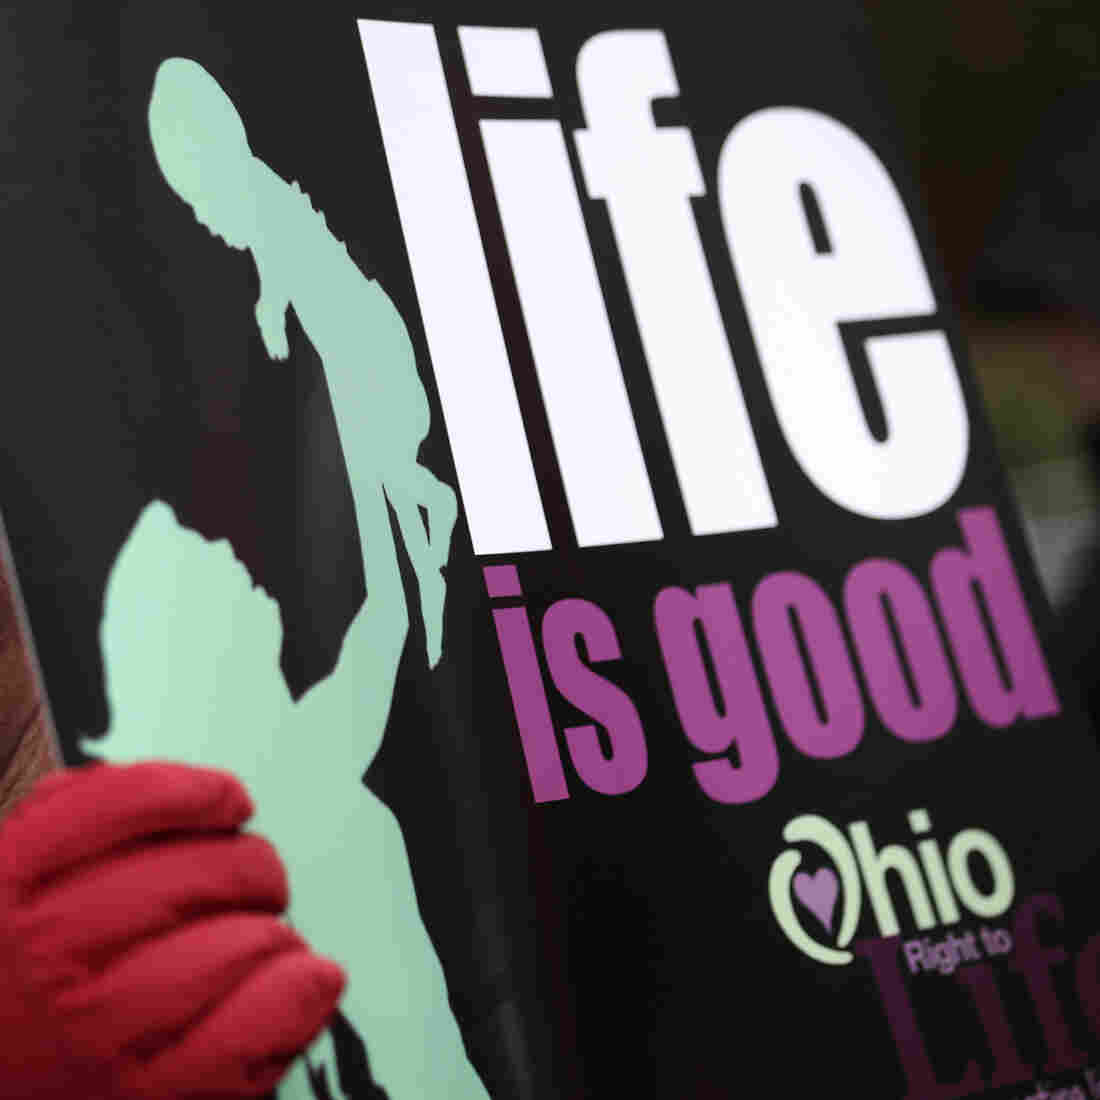 Abortion Restrictions Complicate Access For Ohio Women